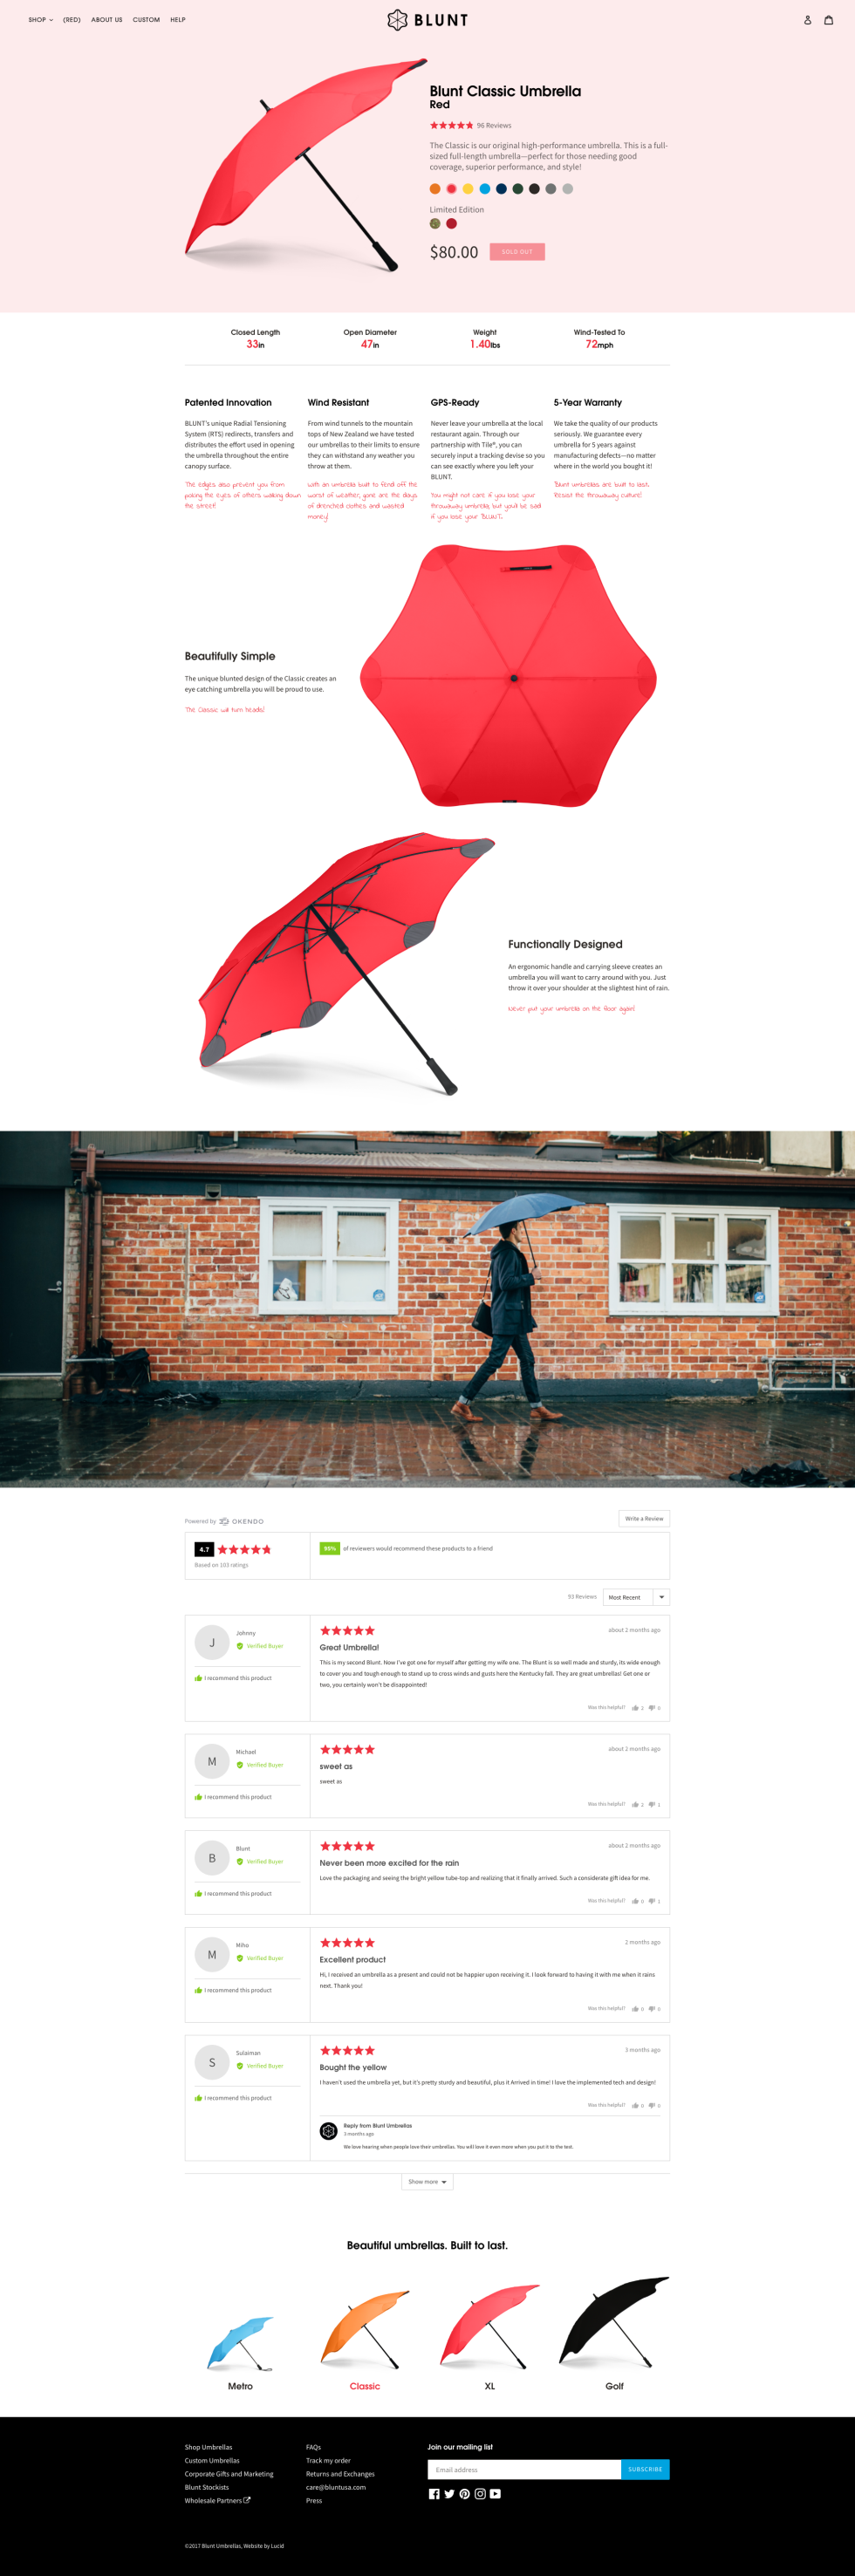 Image of Blunt Umbrellas website